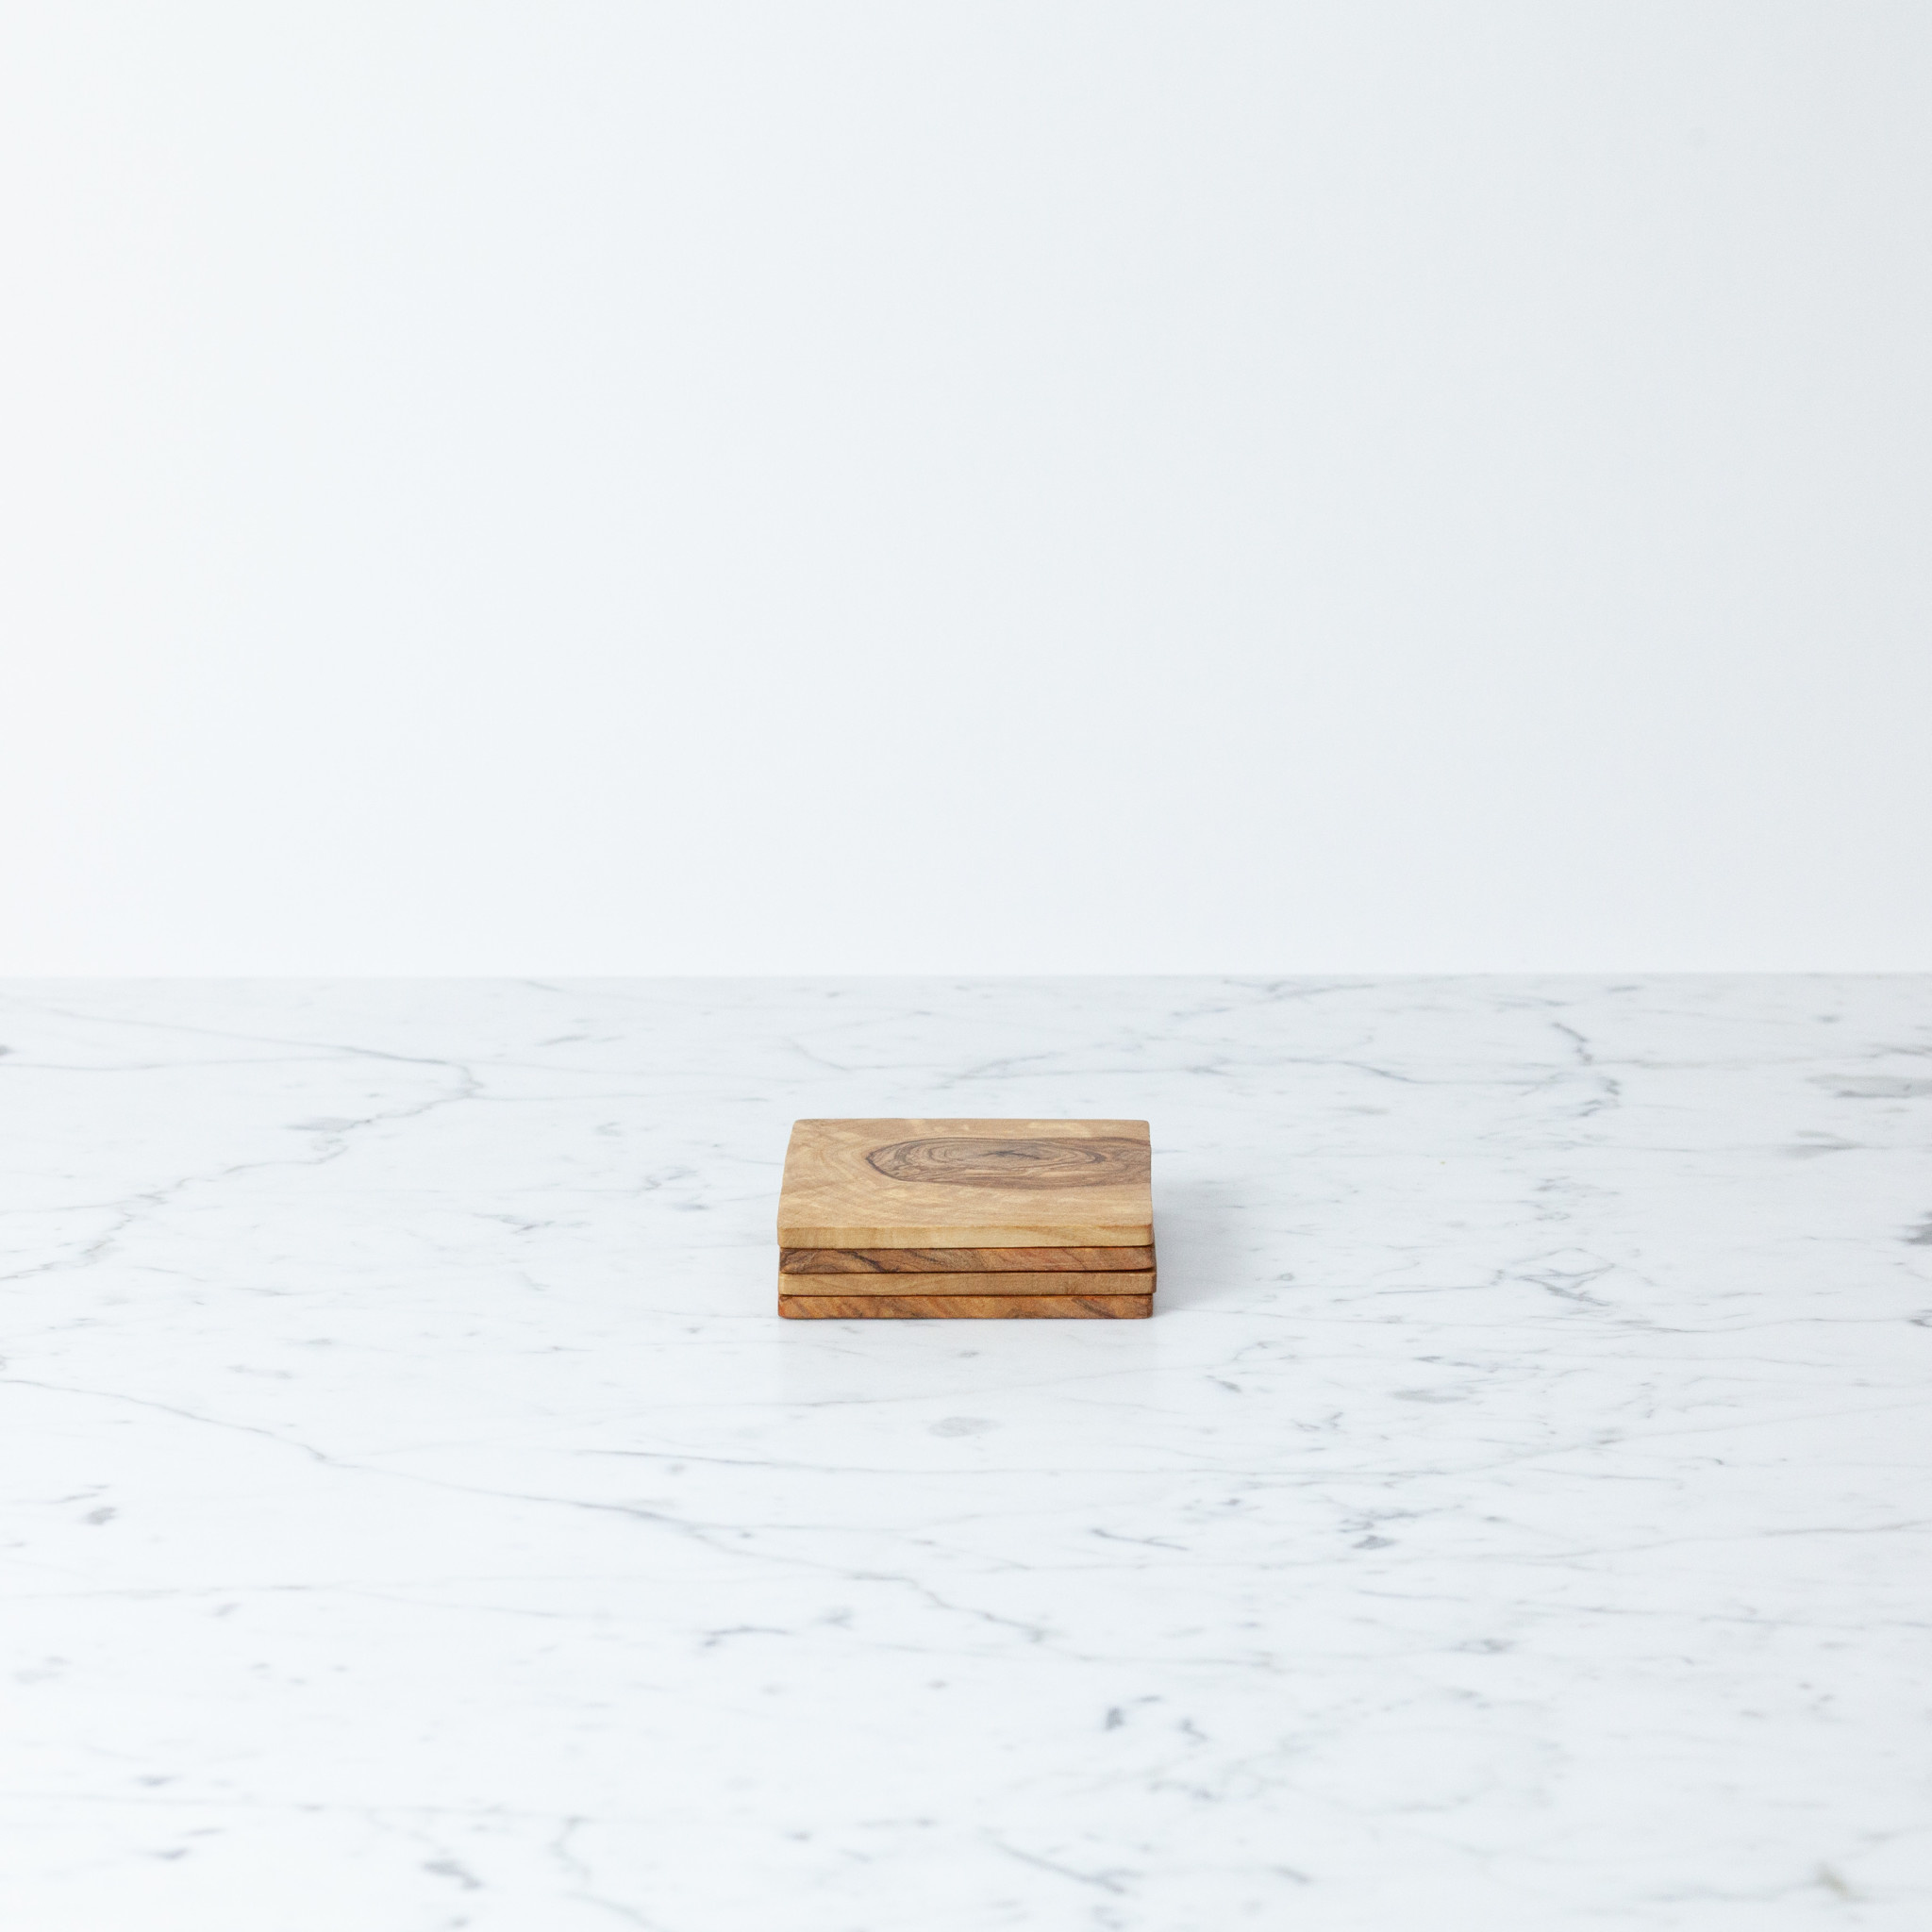 Olive Wood Set of 4 Square Coasters - 3.5""